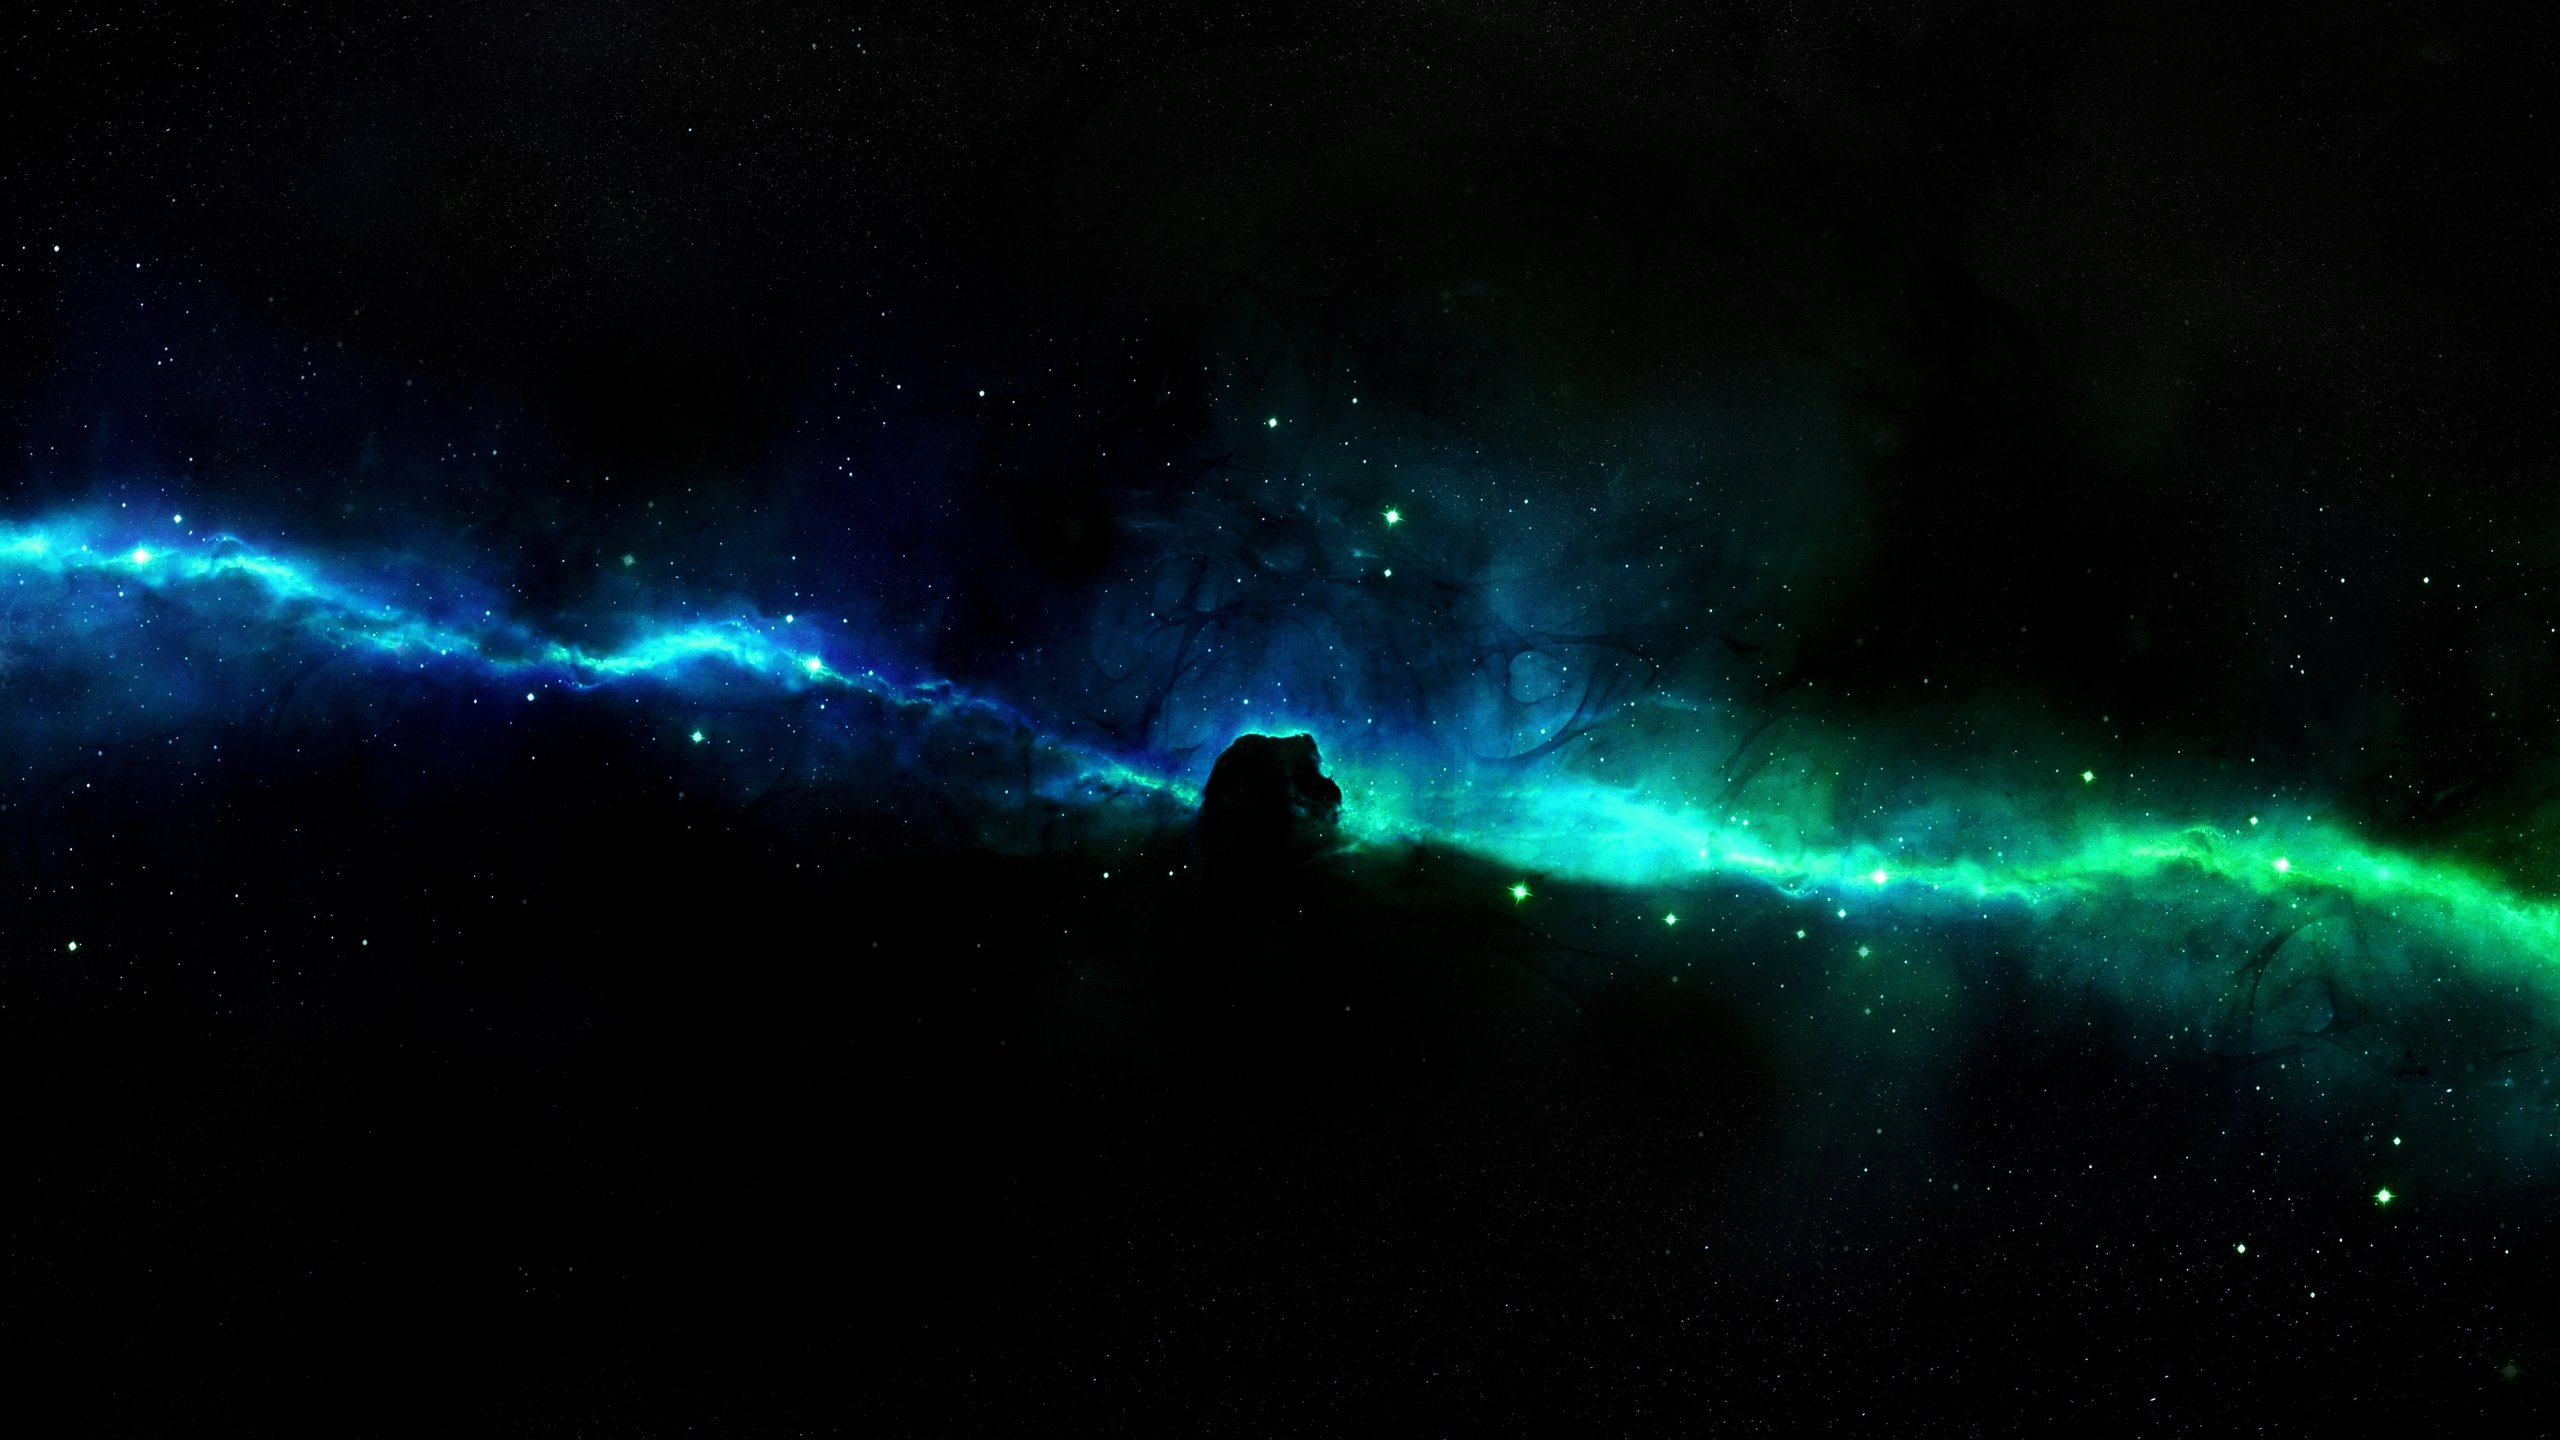 High Resolution Space Wallpaper 2560x1440